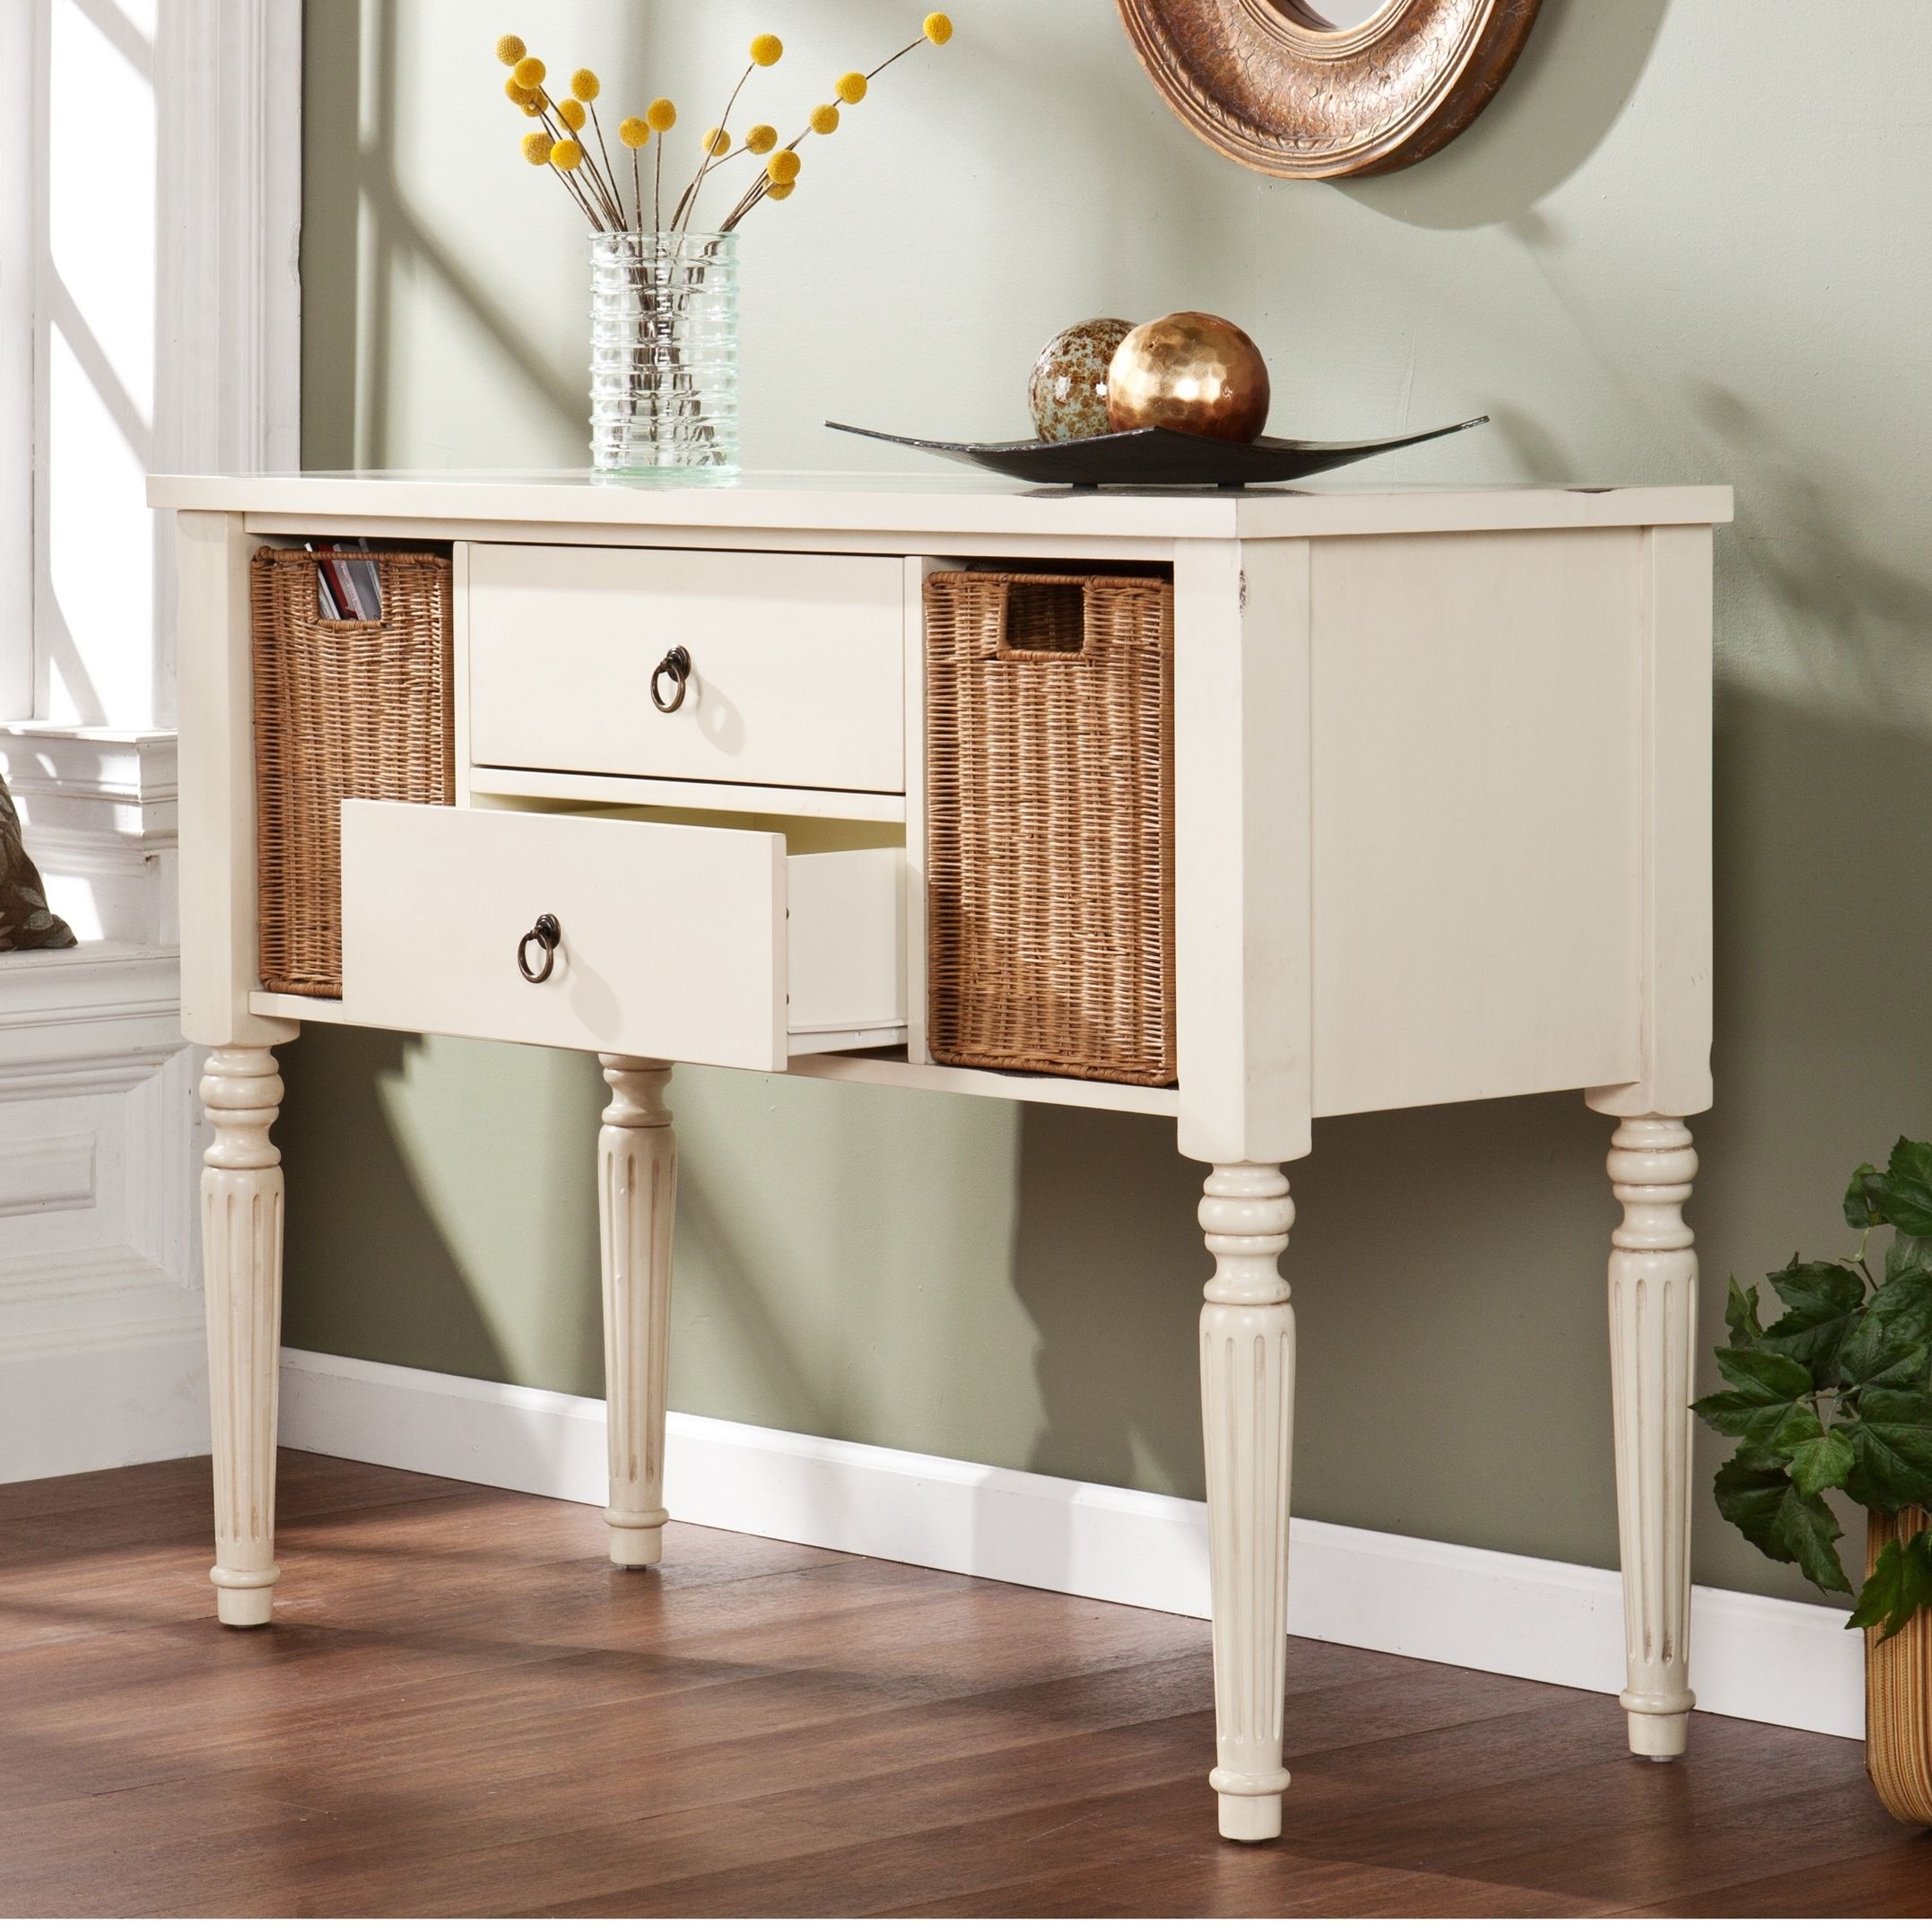 The Upton Home Catalina console with storage baskets provides a